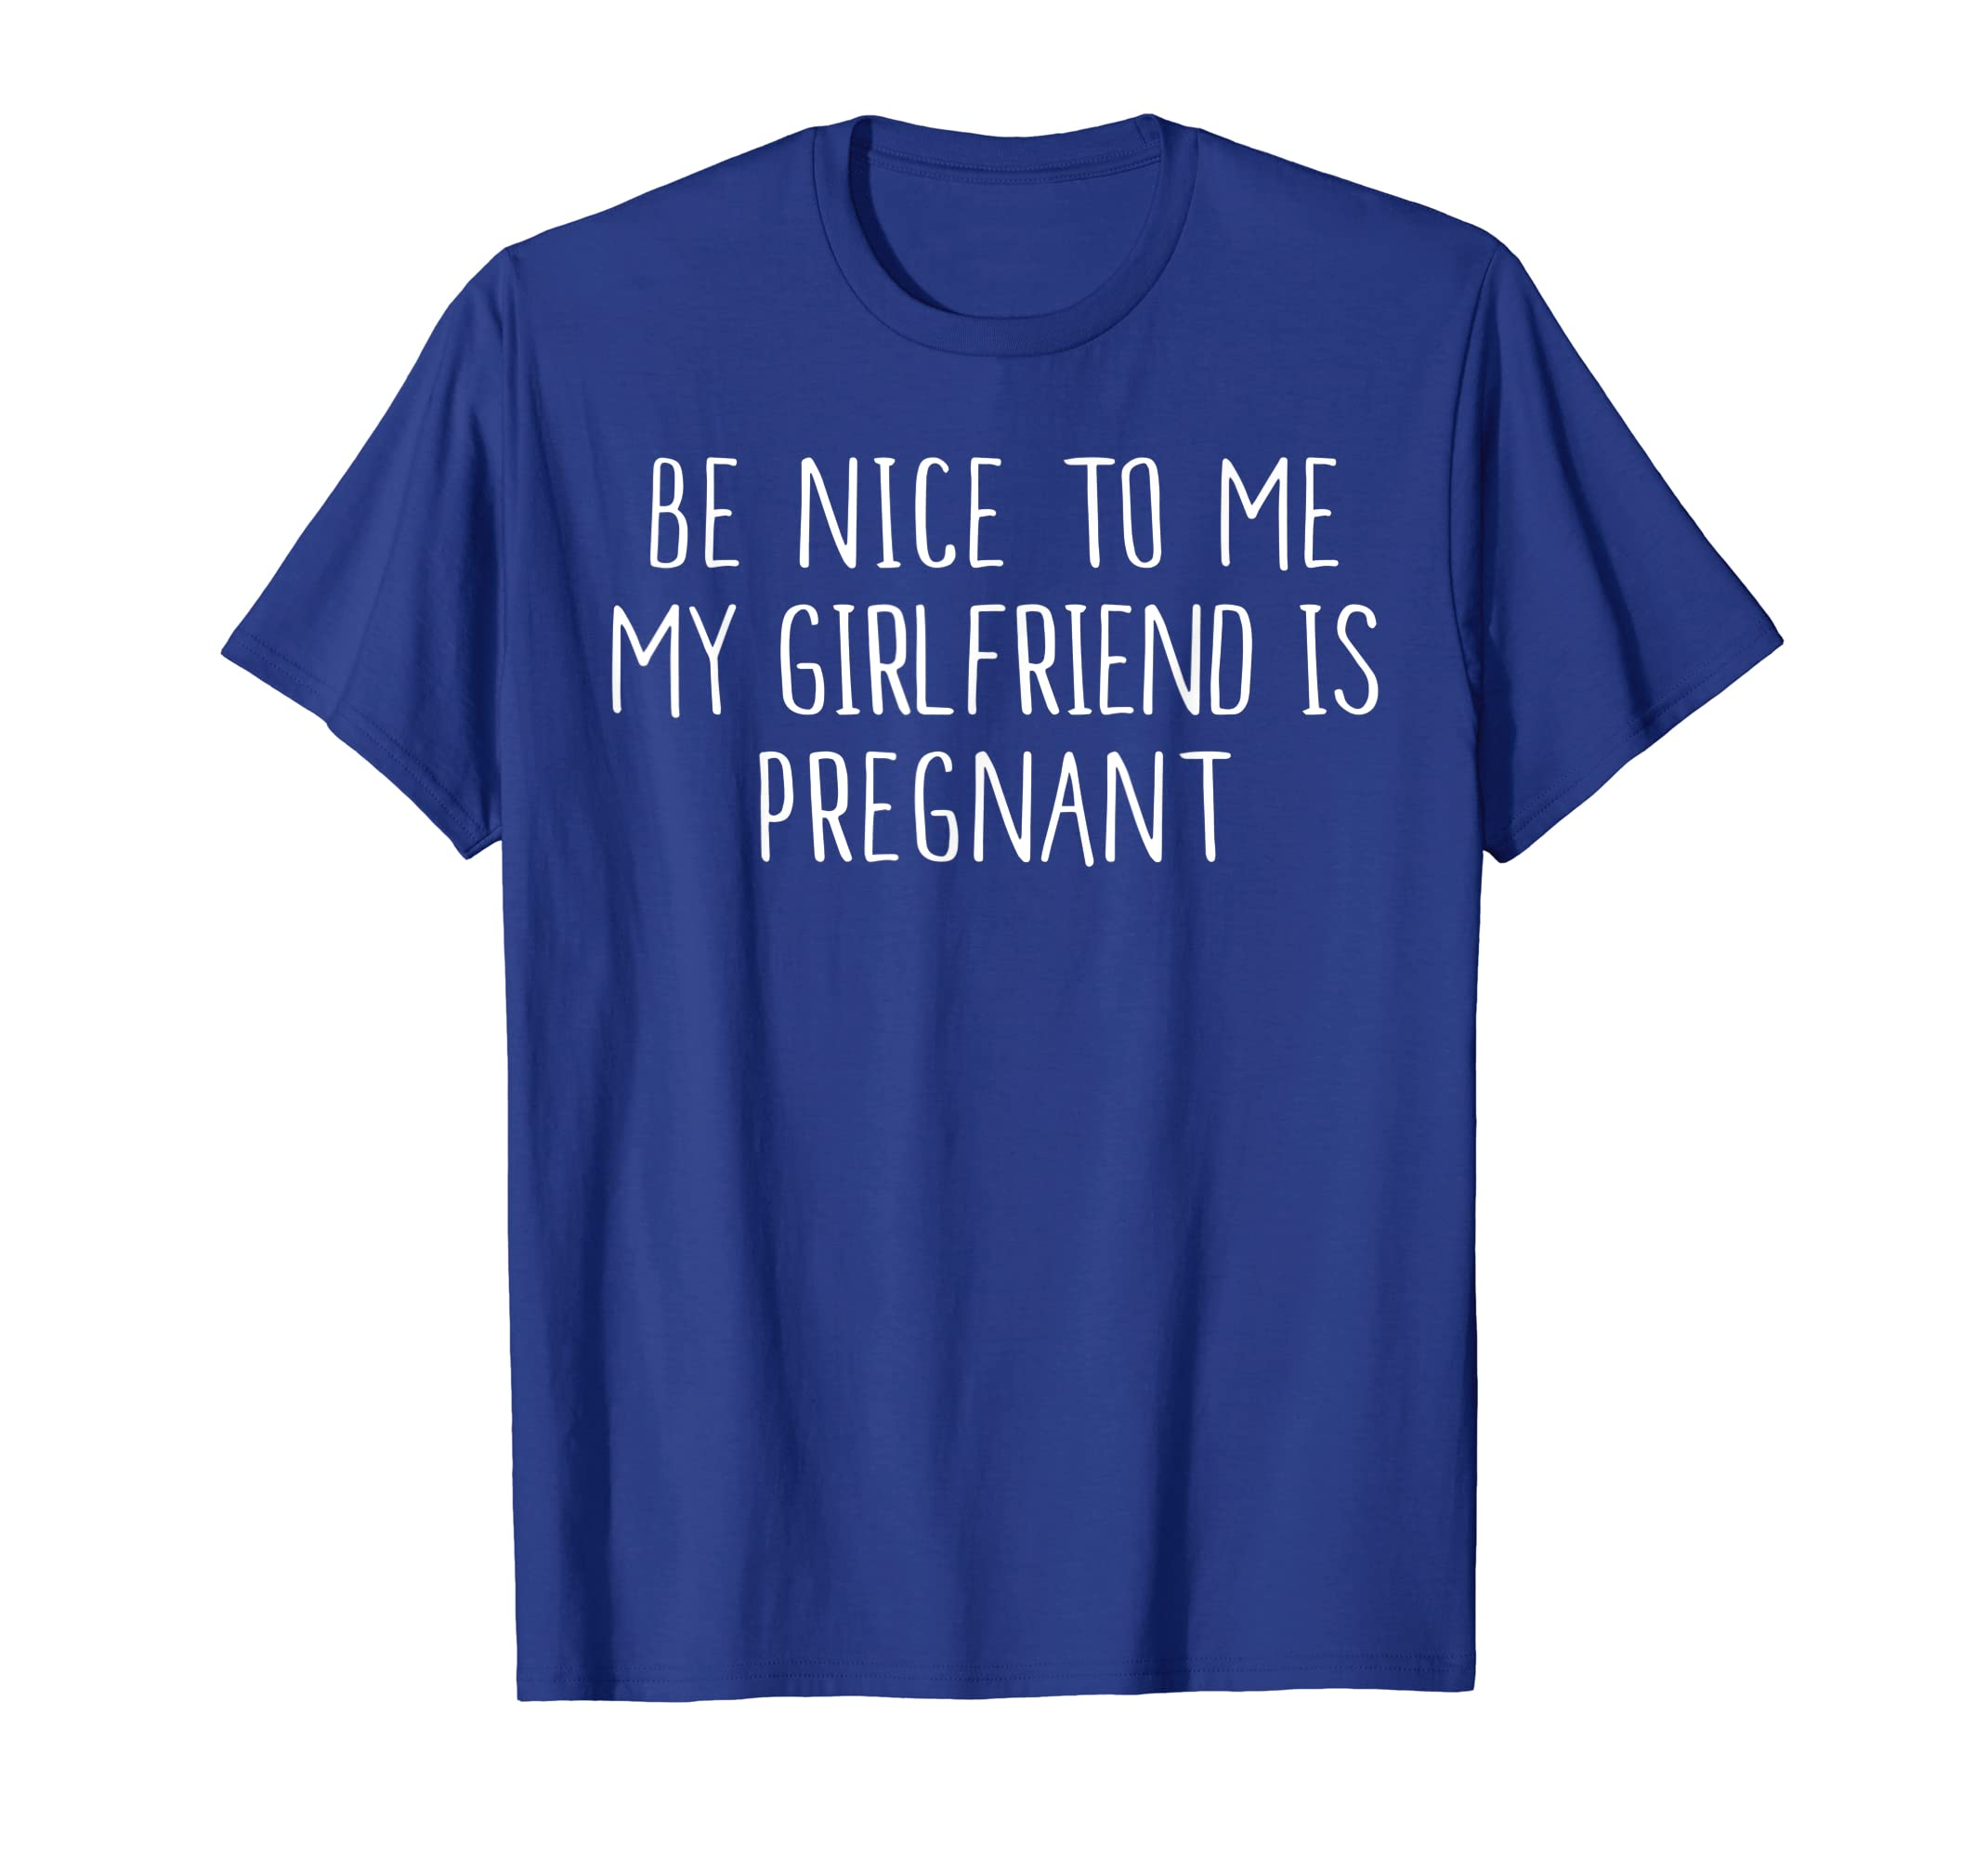 8a0171811e2d2 Amazon.com: Mens Funny Be Nice To Me My Girlfriend is Pregnant Shirt:  Clothing